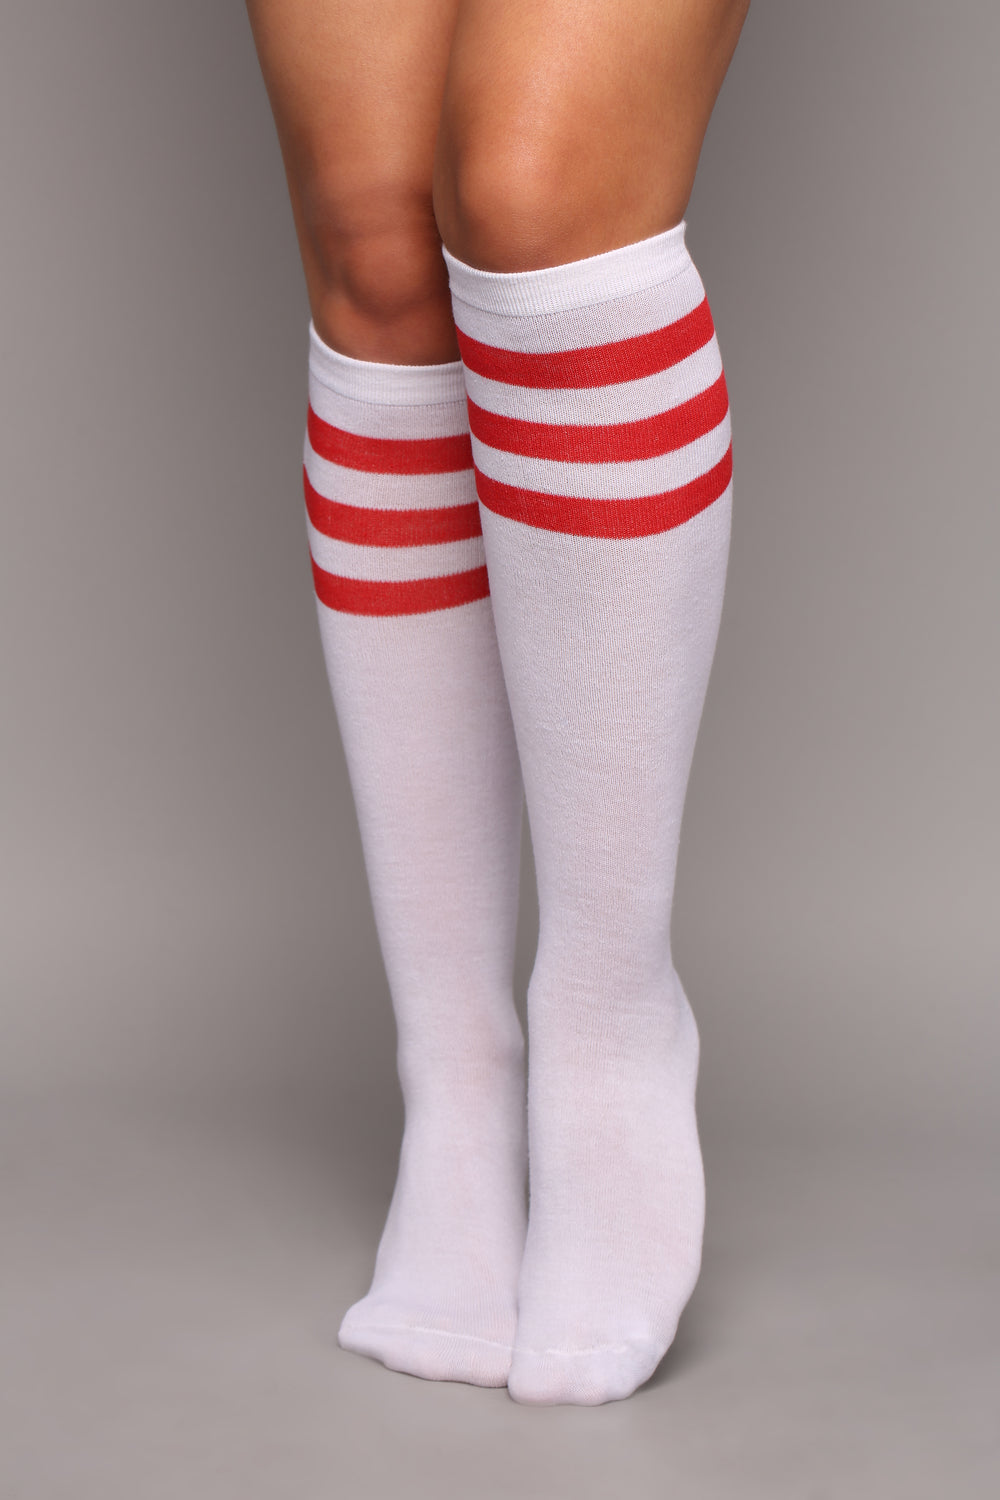 Not Your Average Knee High Socks - Red